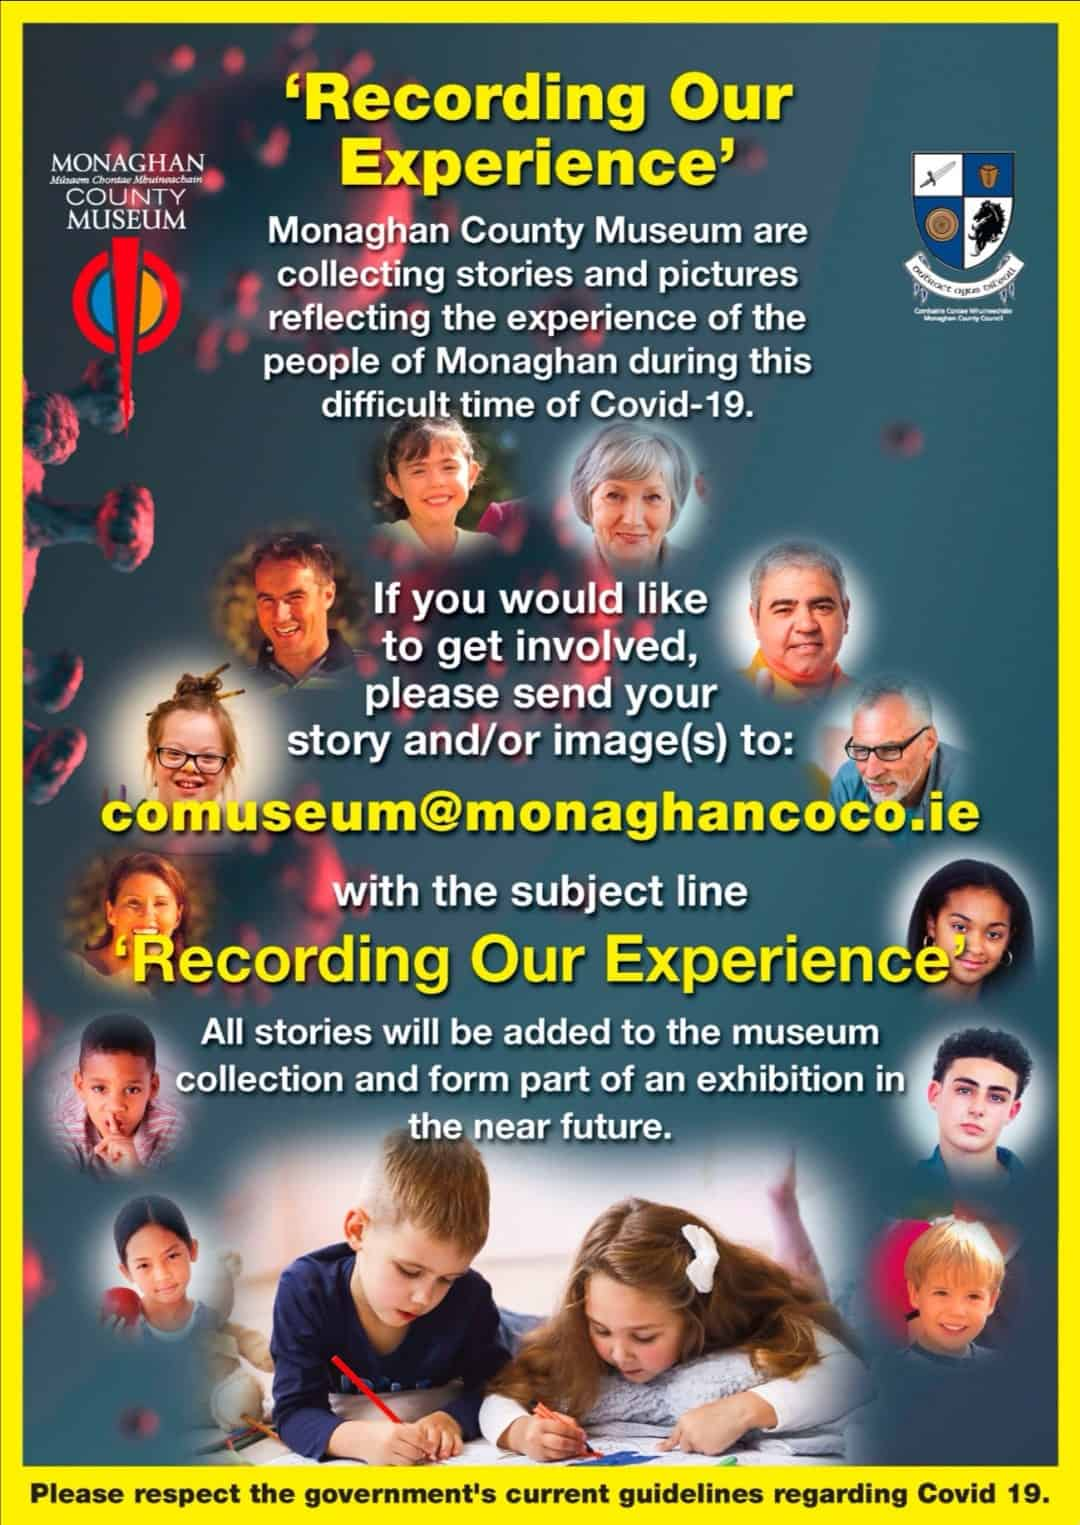 Monaghan County Museum wants to collect your experiences and stories about the Covid 19 Pandemic